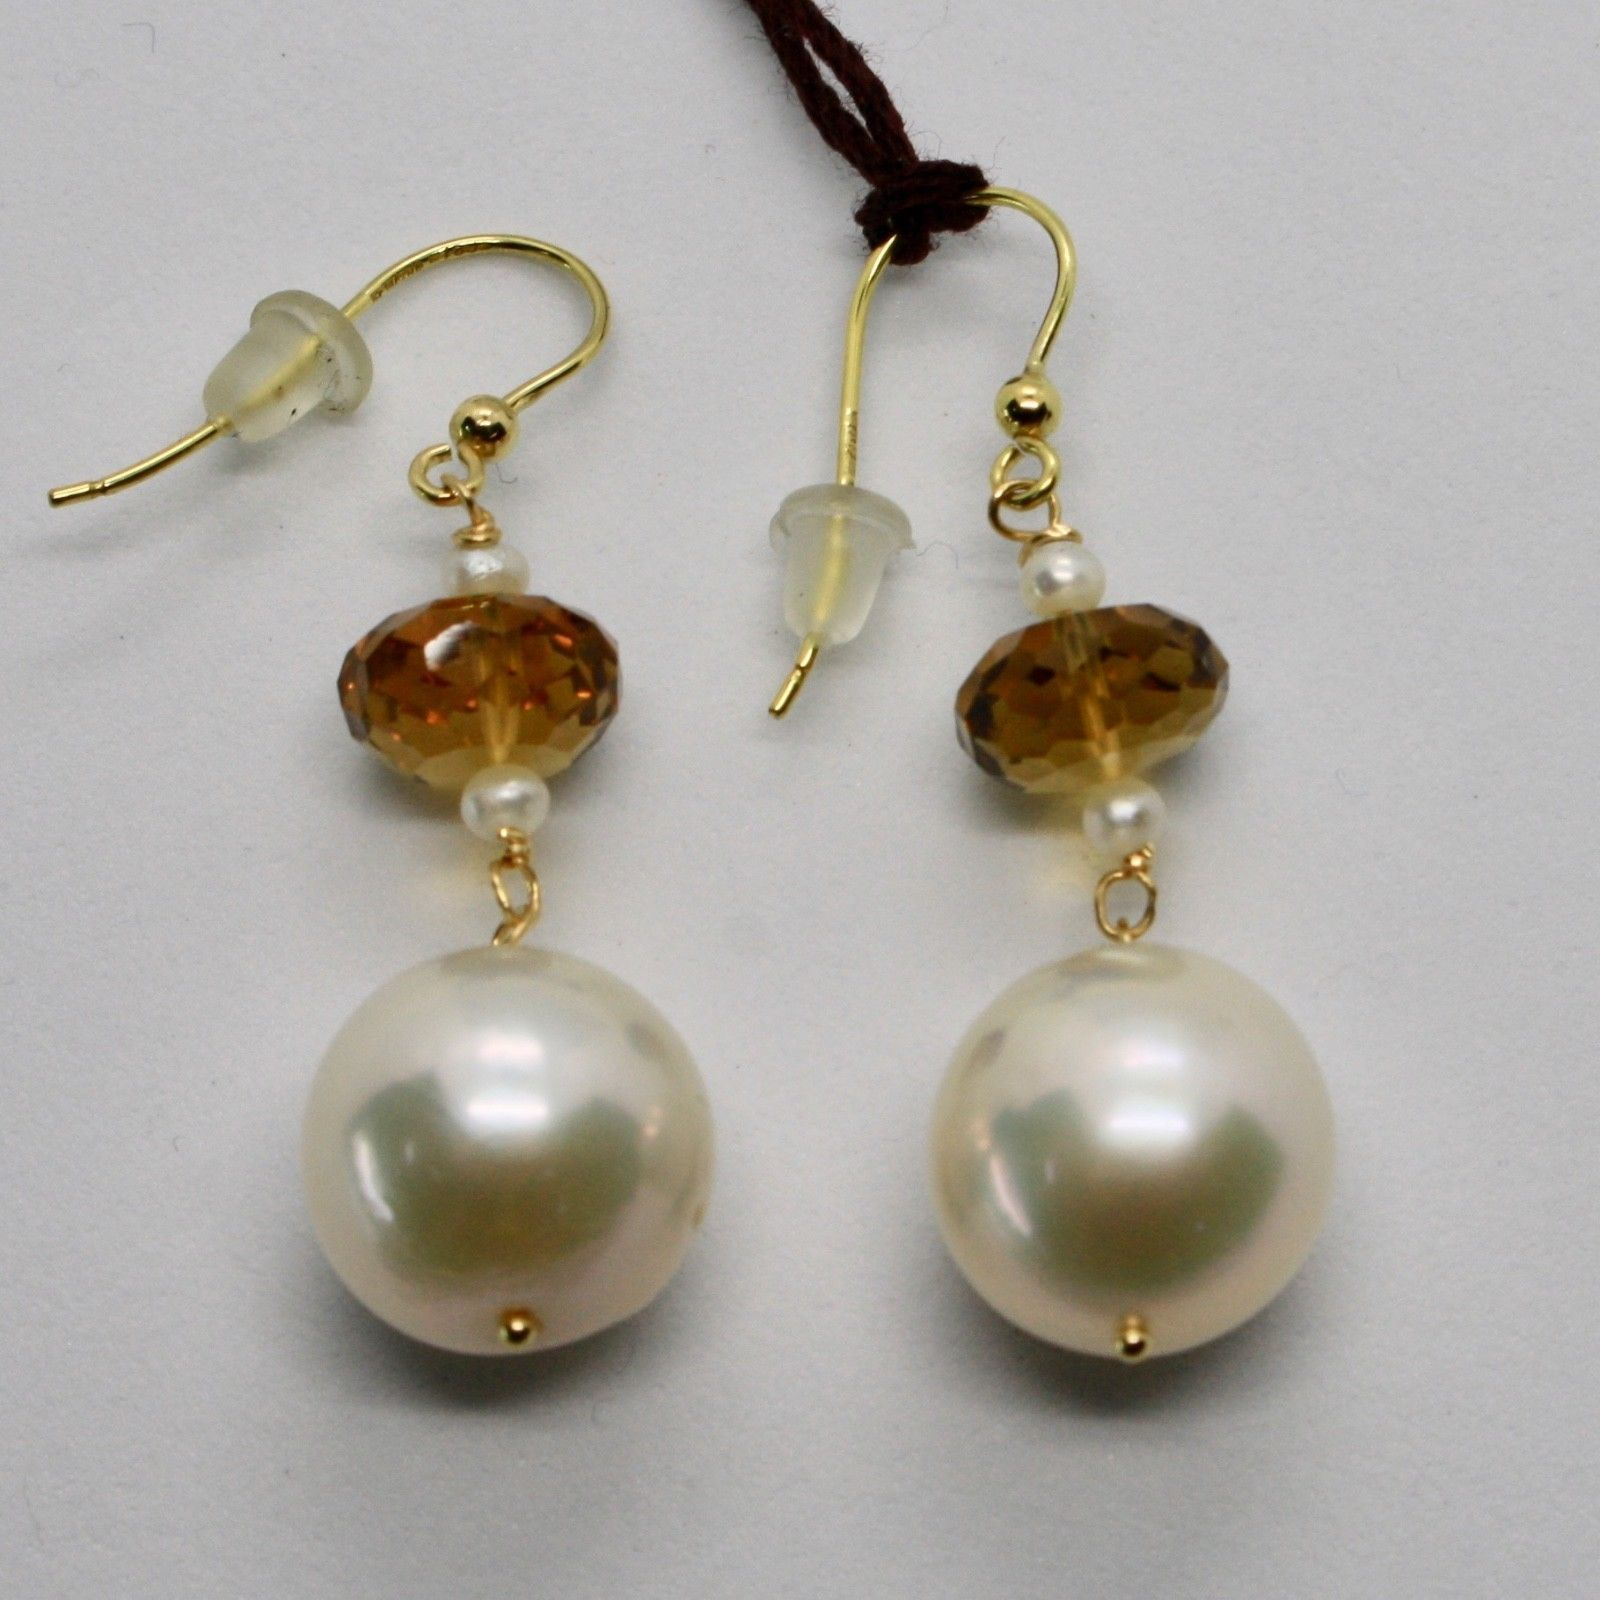 Yellow Gold Earrings 18k 750 Freshwater Pearls And Quartz Beer Made in Italy